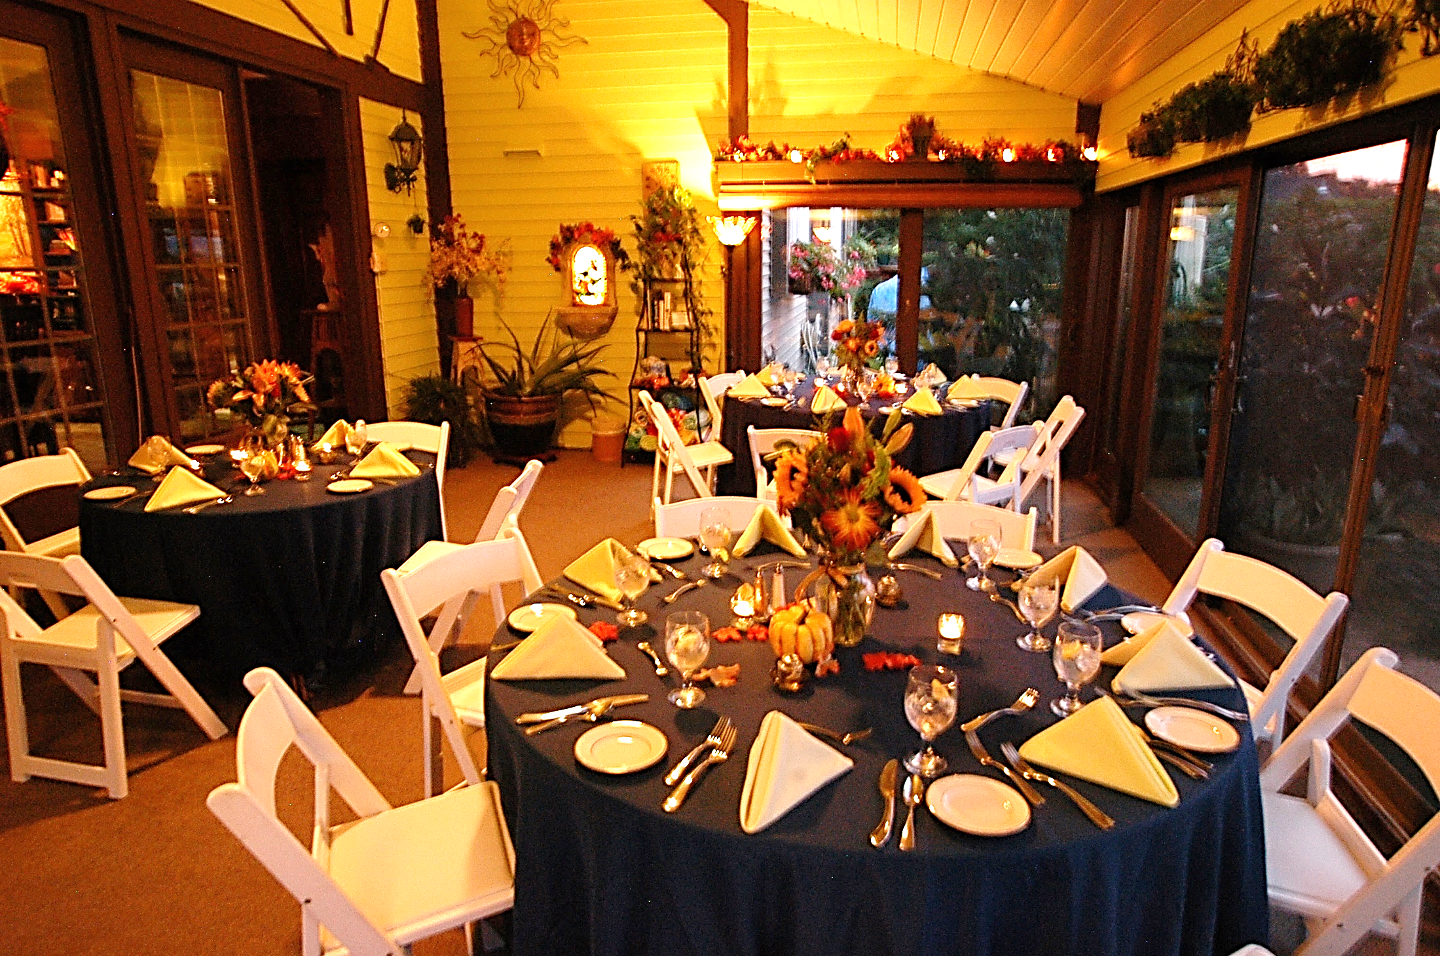 Annville Inn's Garden Room reset to have three round tables set up with eight place settings each for a catered dinner during a reunion.